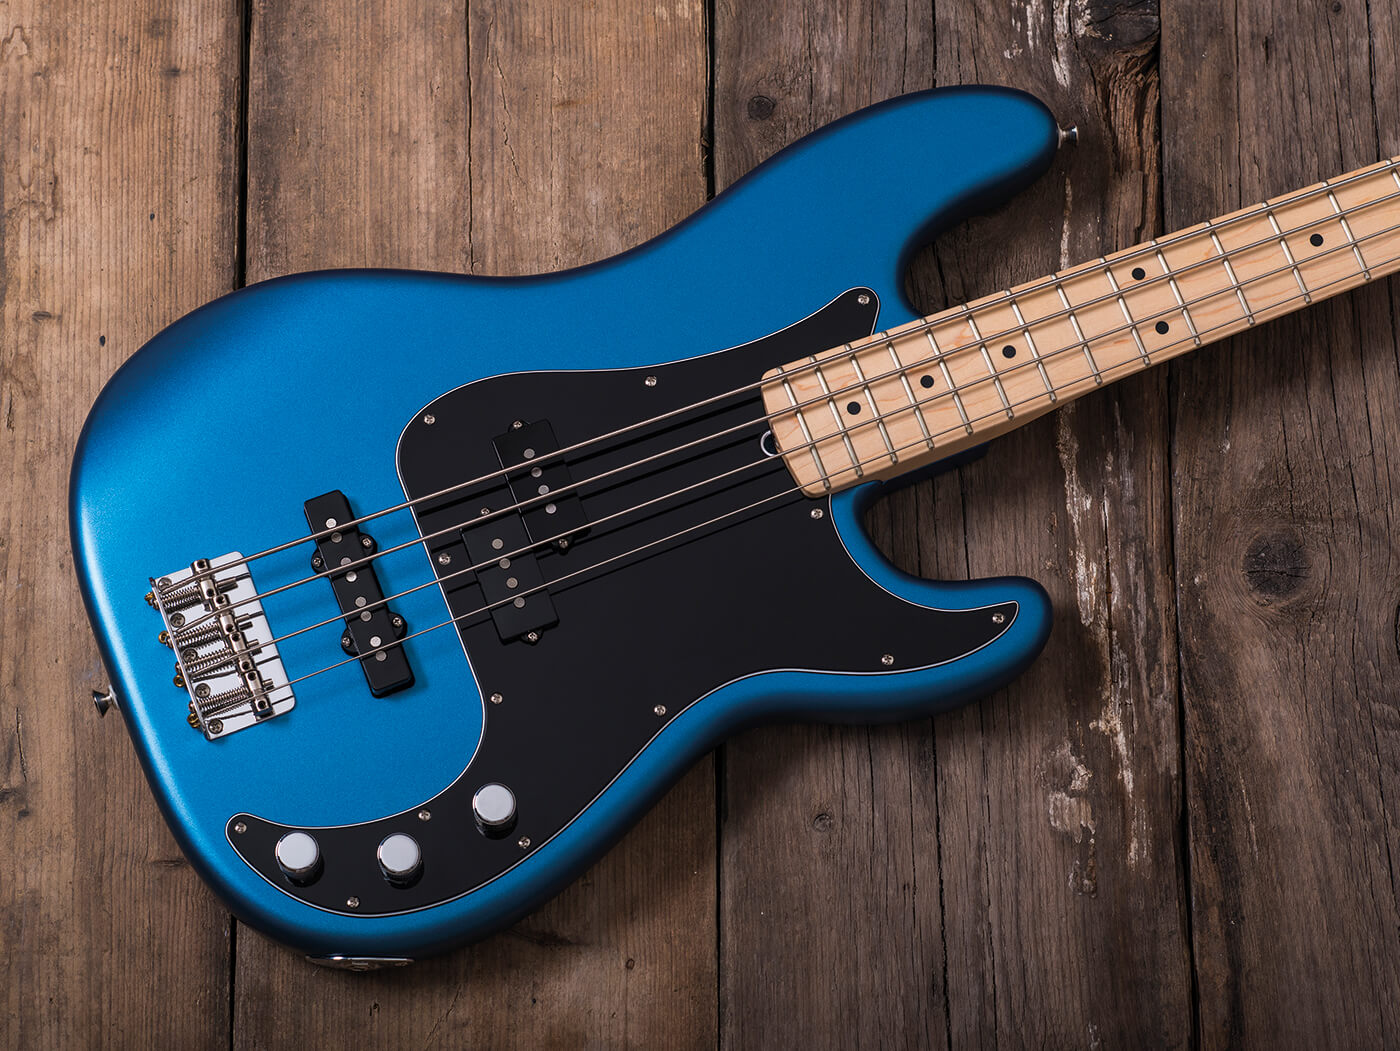 fender 2019 american performer precision bass review all things guitar. Black Bedroom Furniture Sets. Home Design Ideas